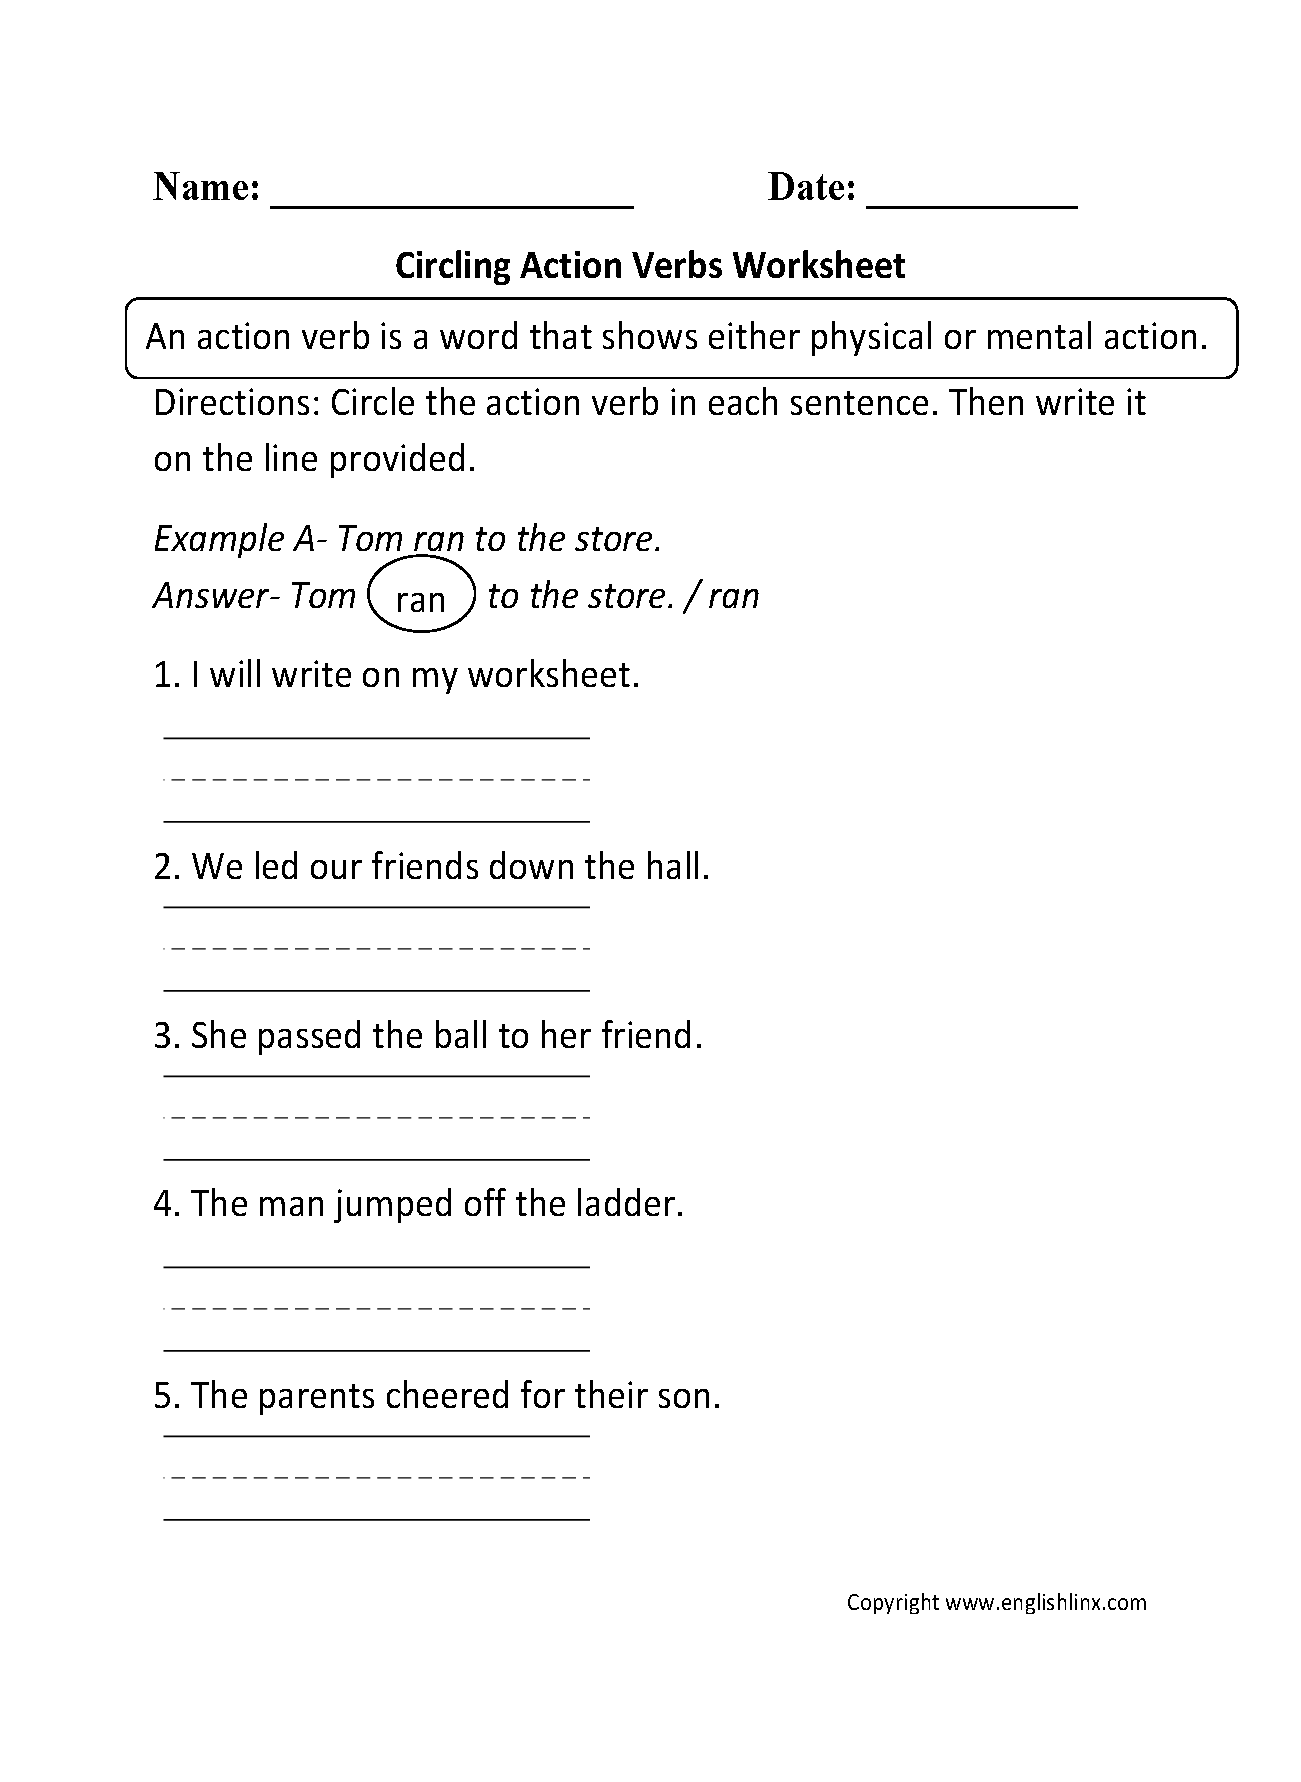 worksheet Advanced Esl Grammar Worksheets circling action verbs worksheet english pinterest these worksheets are for students at the beginner intermediate and advanced level